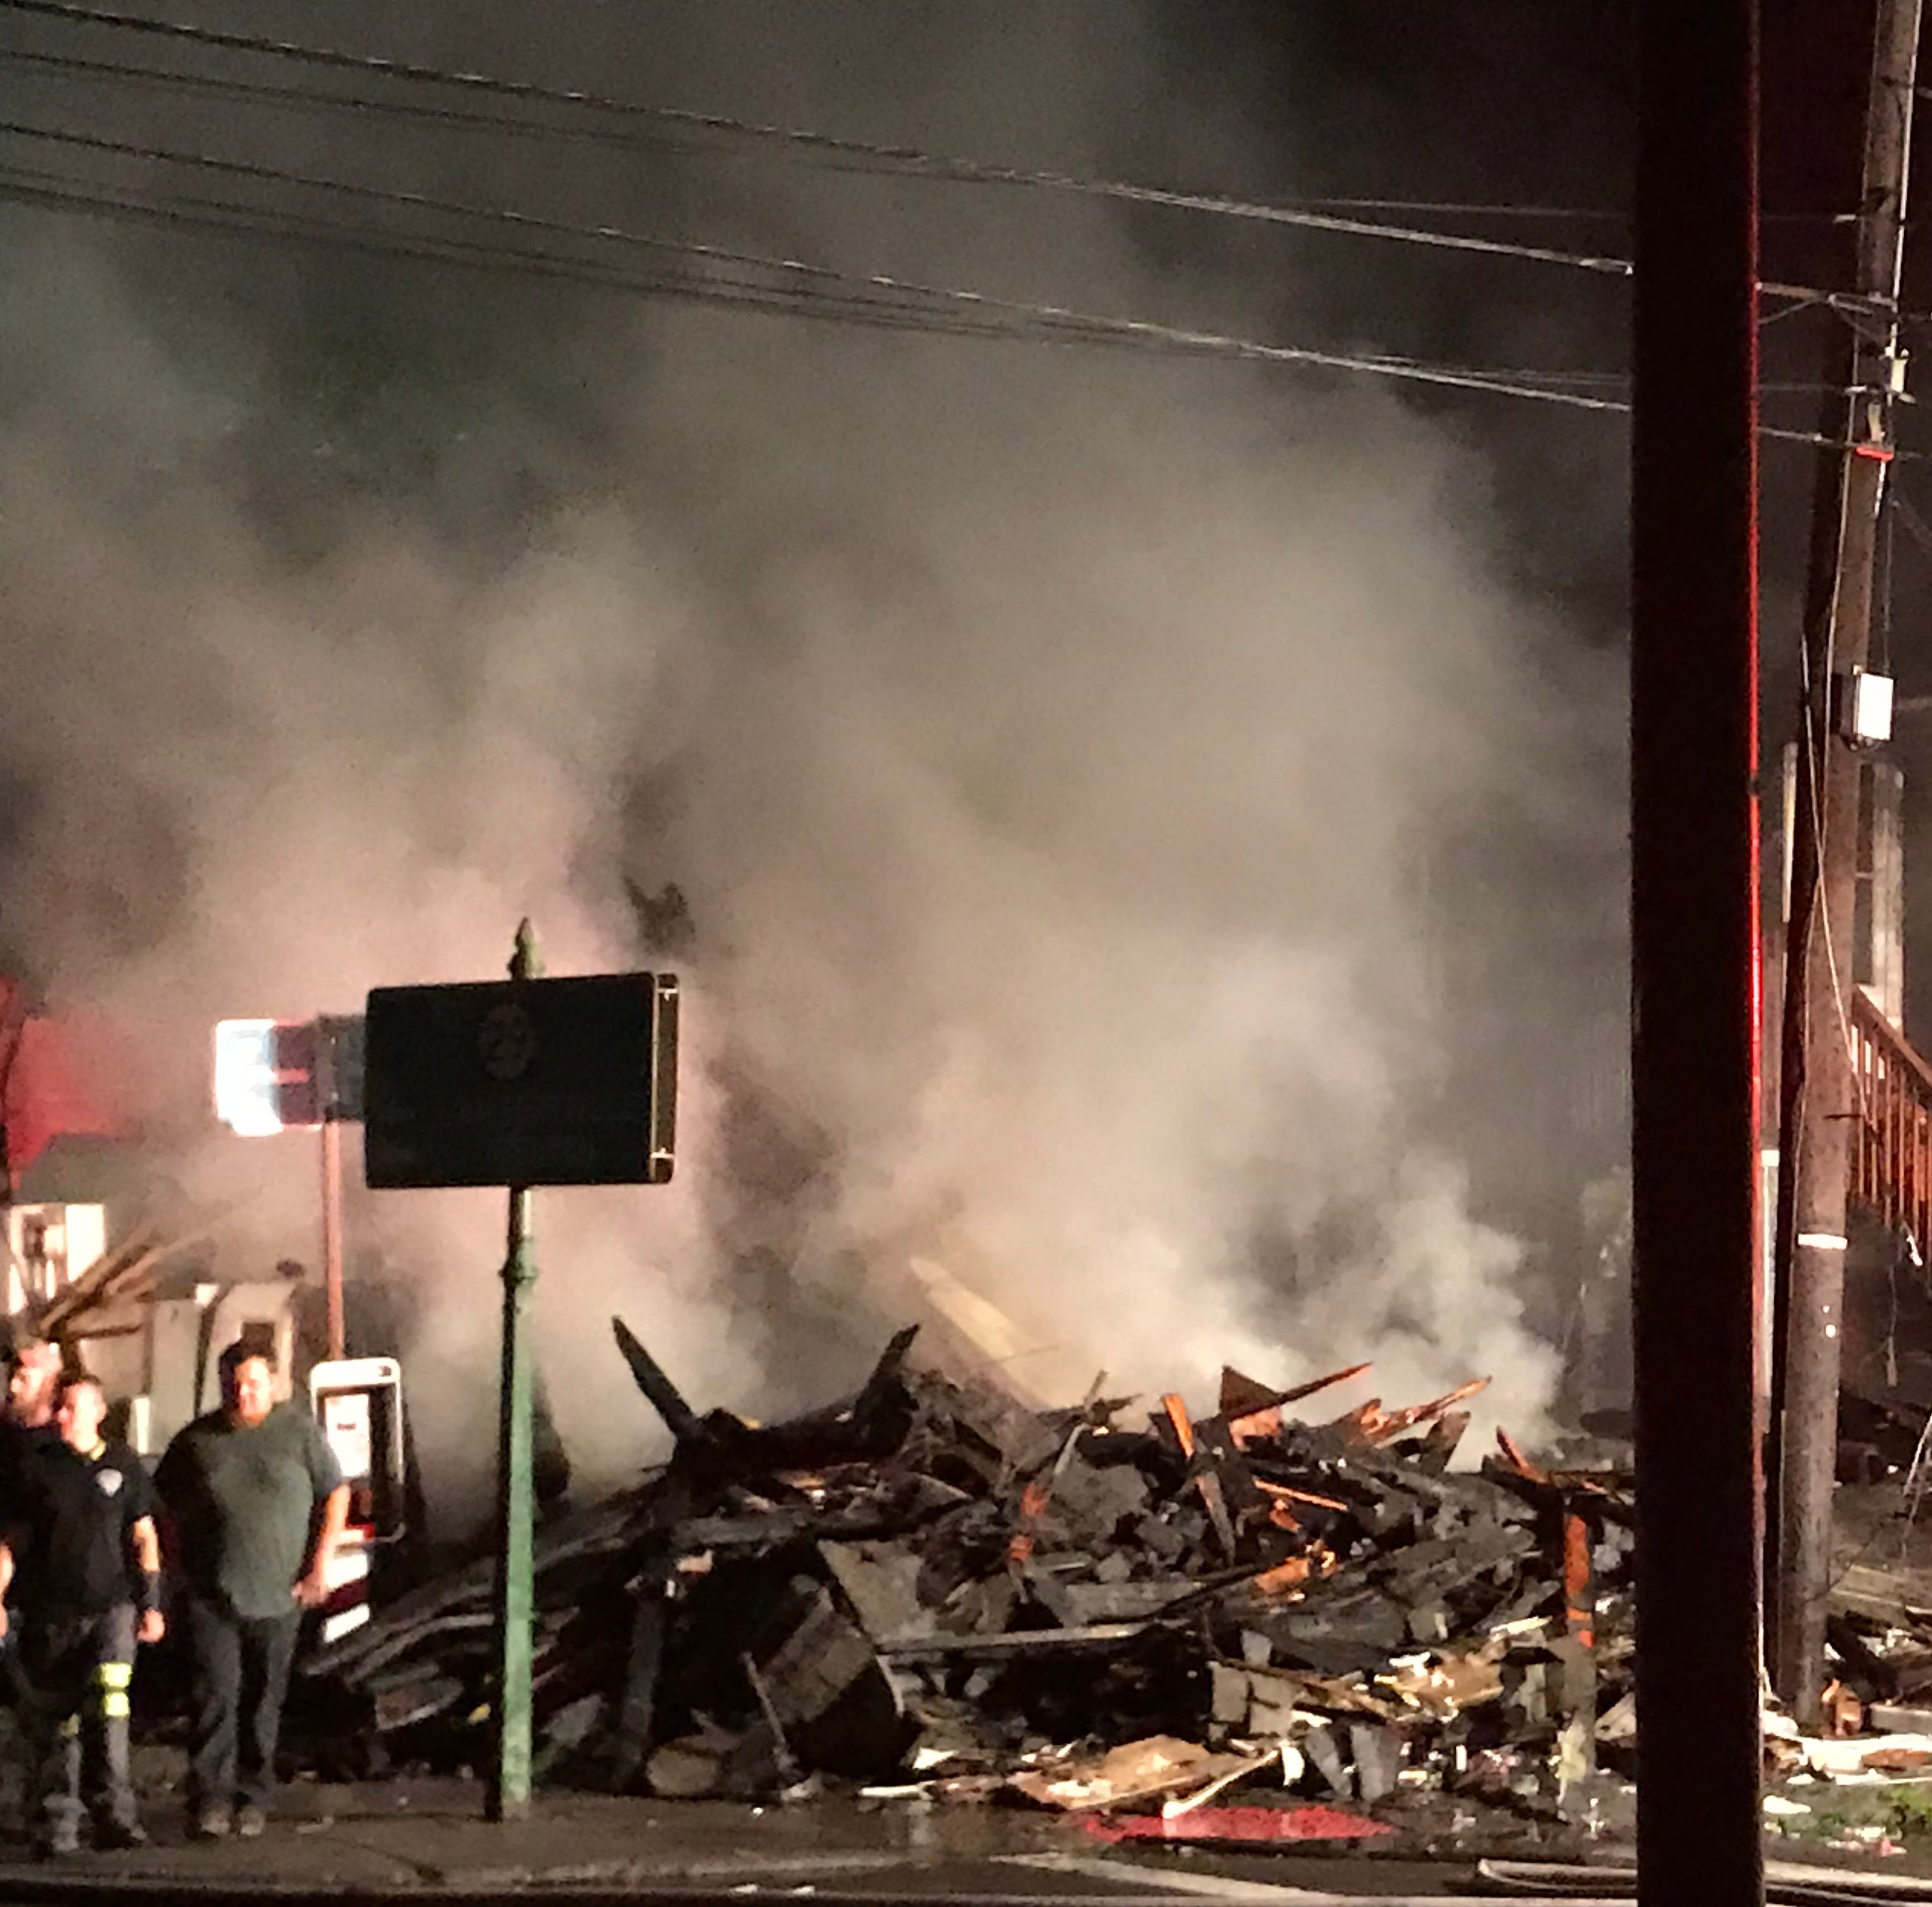 Frenchtown continues to rebuild after fire that destroyed two buildings